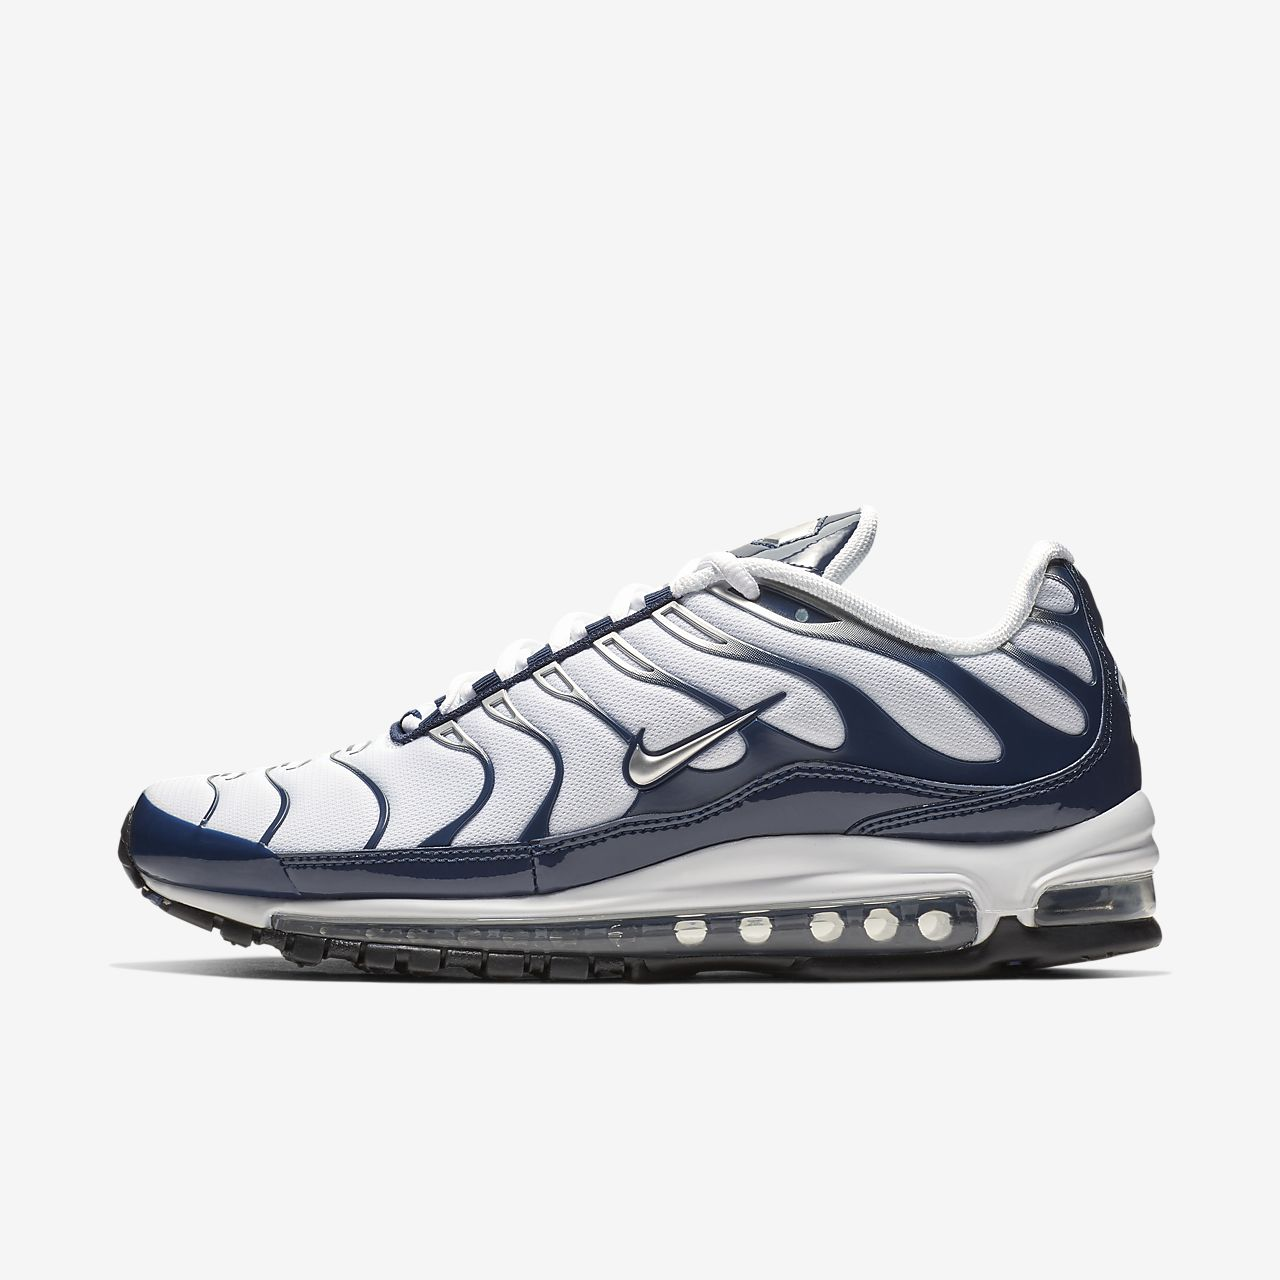 air max 97 tn bottom nz Free delivery!